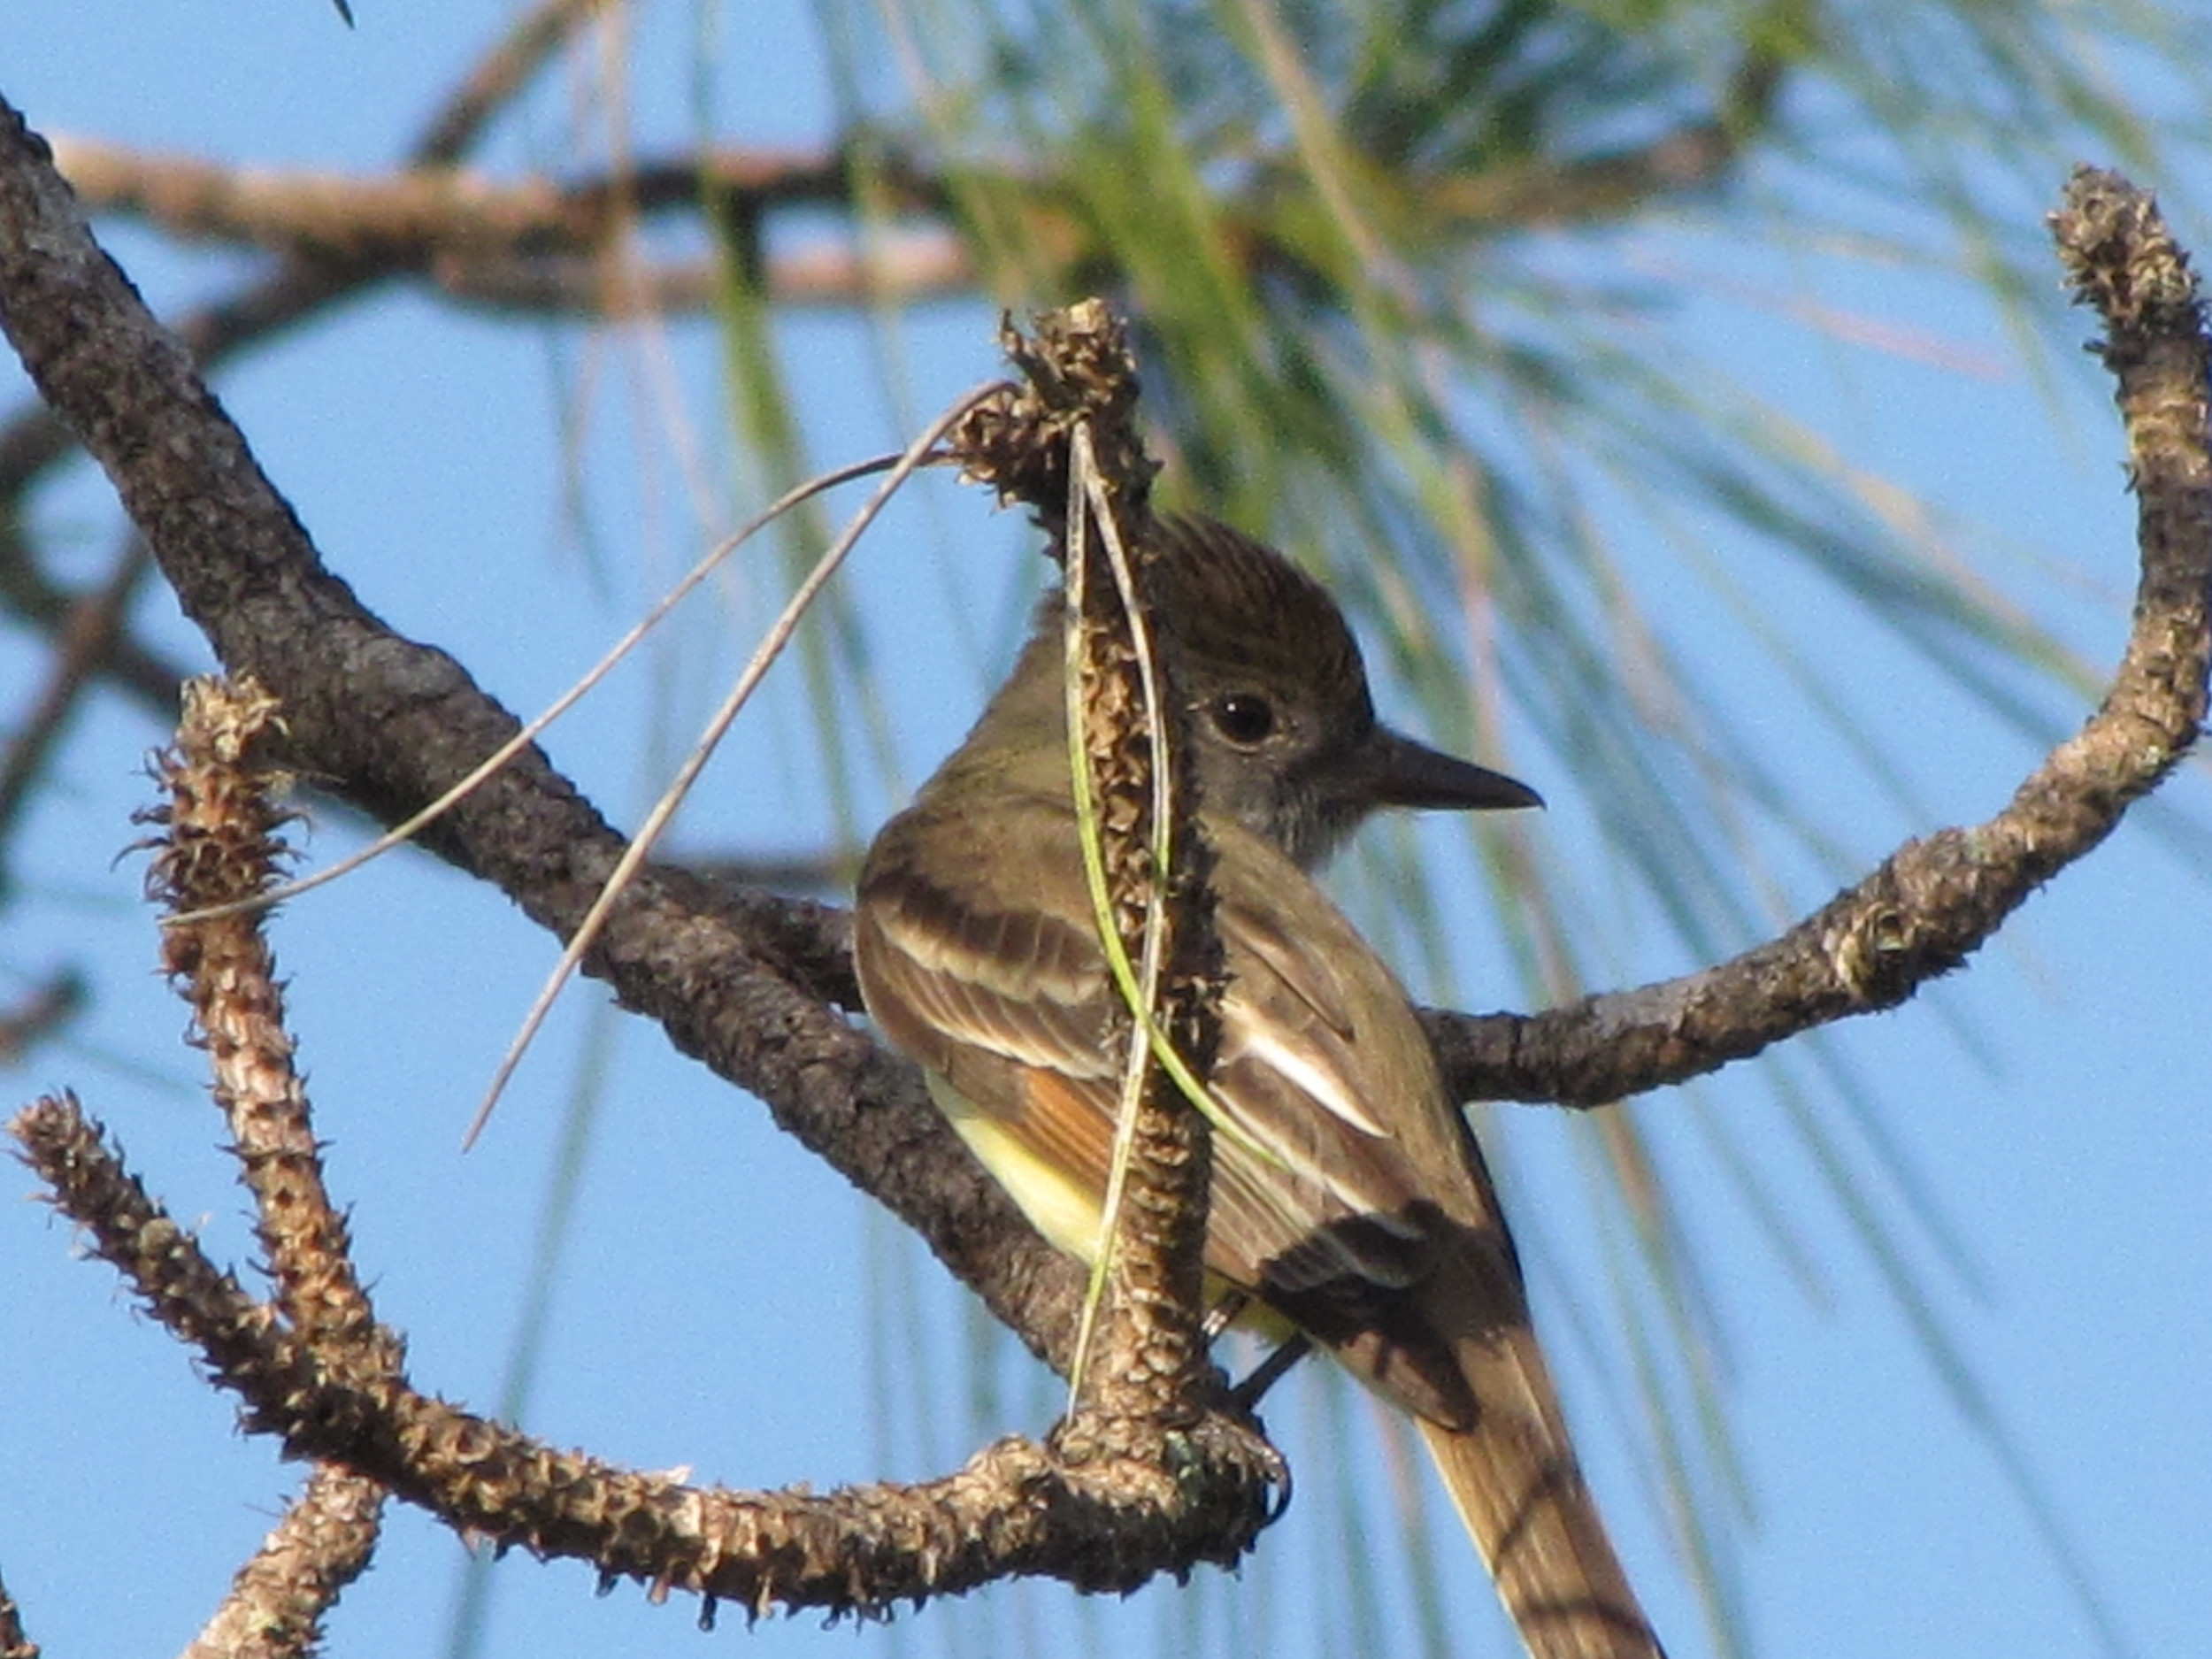 The Great crested flycatcher